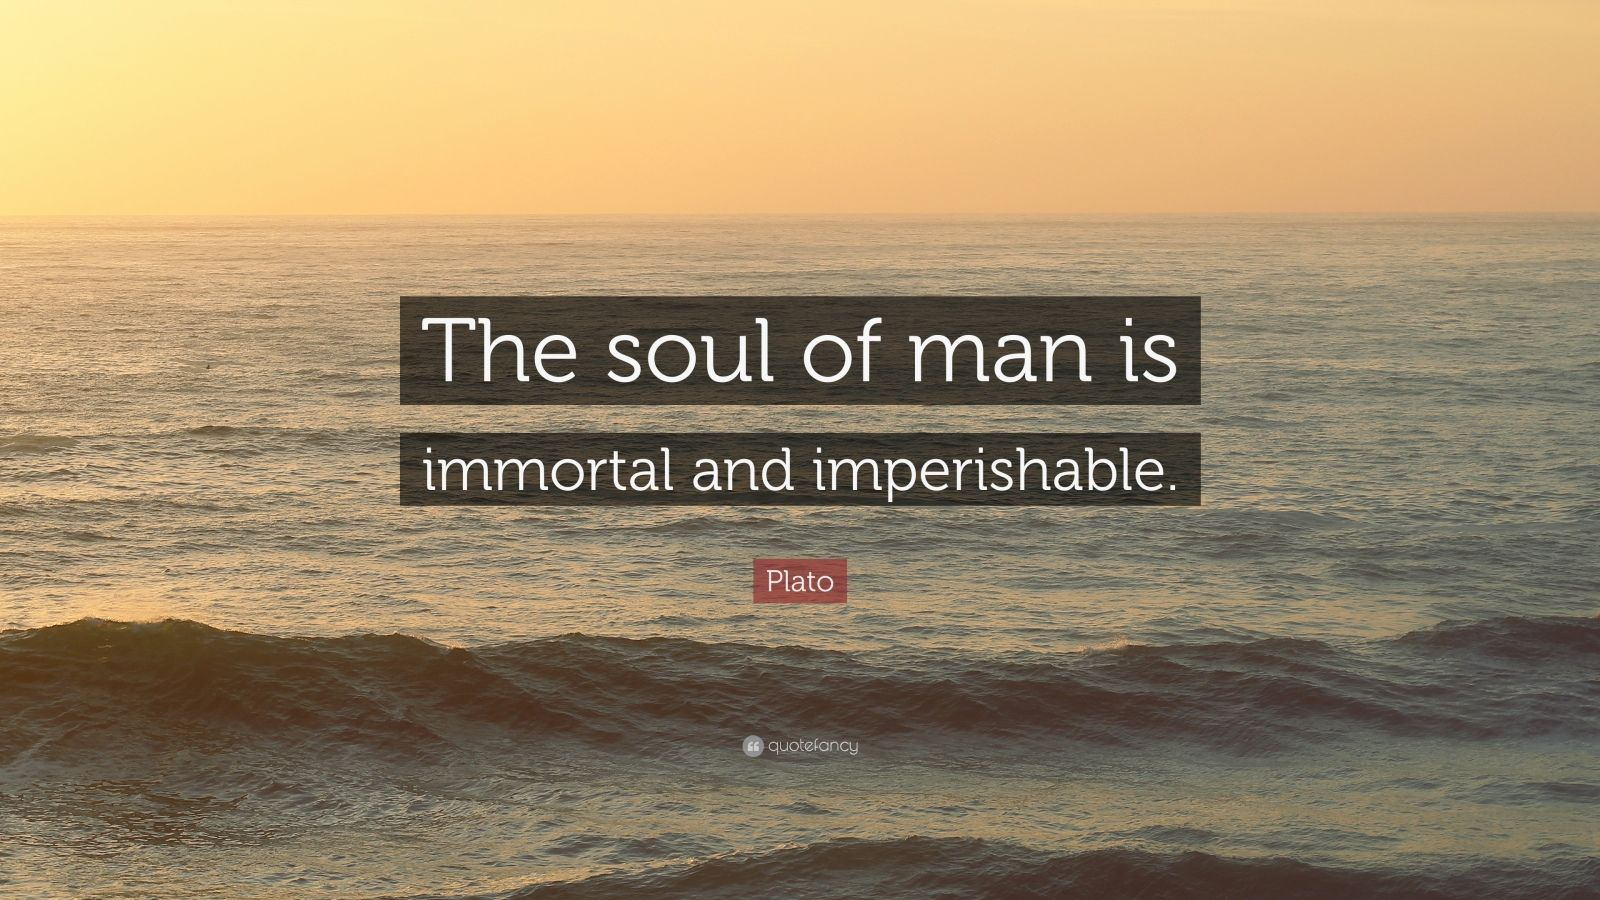 essay on the immortal soul by plato St thomas aquinas on the immortality of the soul essay  (chapter v) this text is  contrary to plato's theory of the union of the intellectual soul with the body.